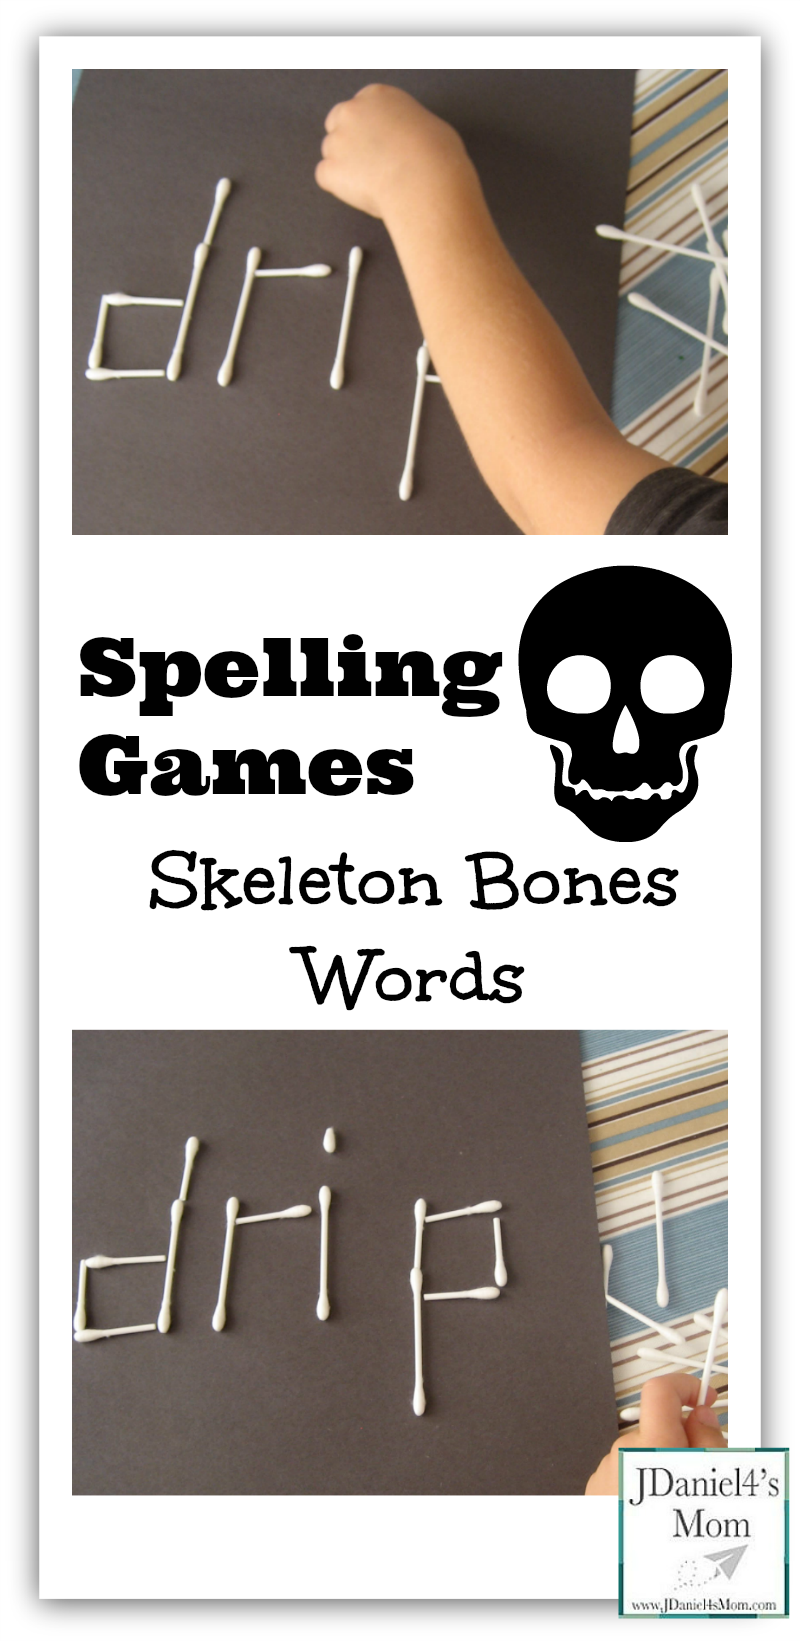 Spelling Games Skeleton Bones Words